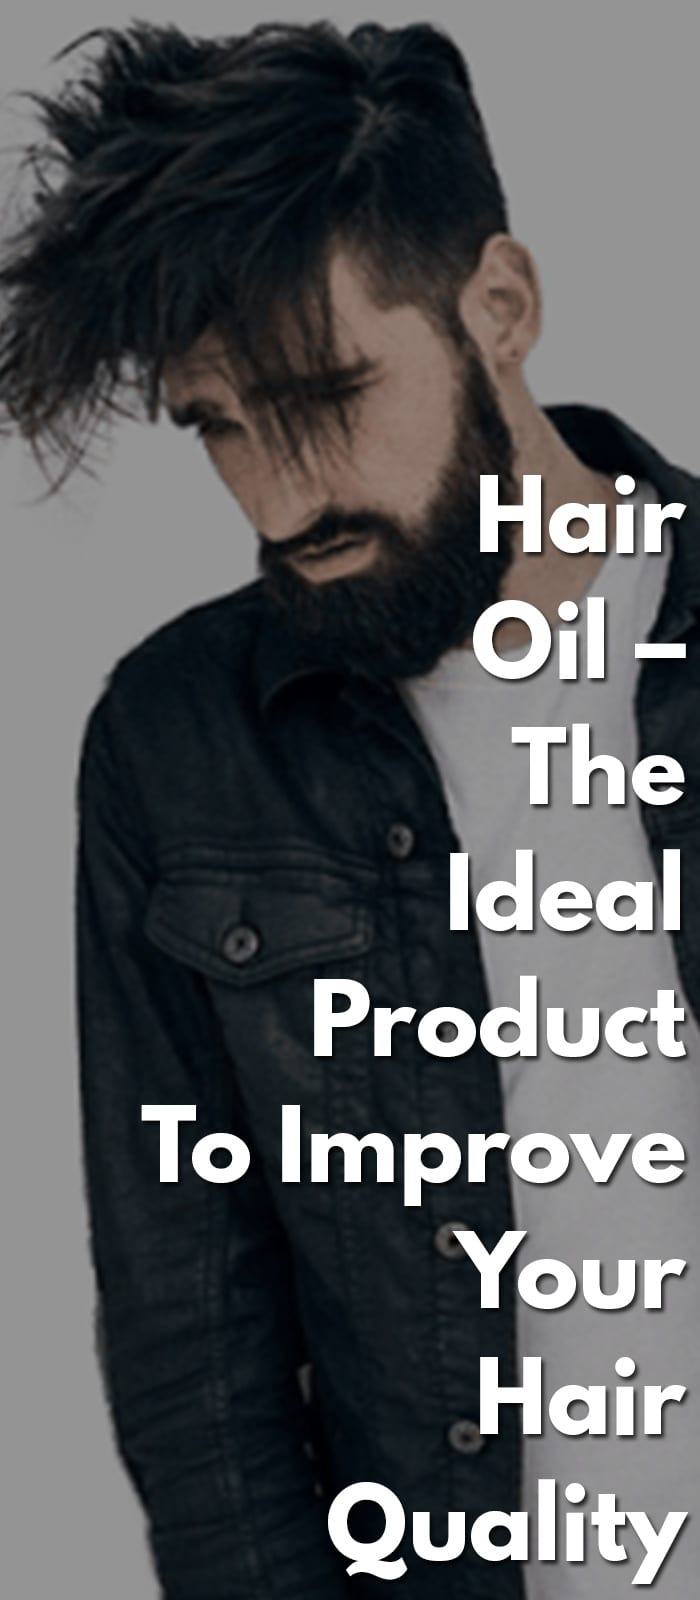 Hair-Oil-–-The-Ideal-Product-To-Improve-Your-Hair-Quality.